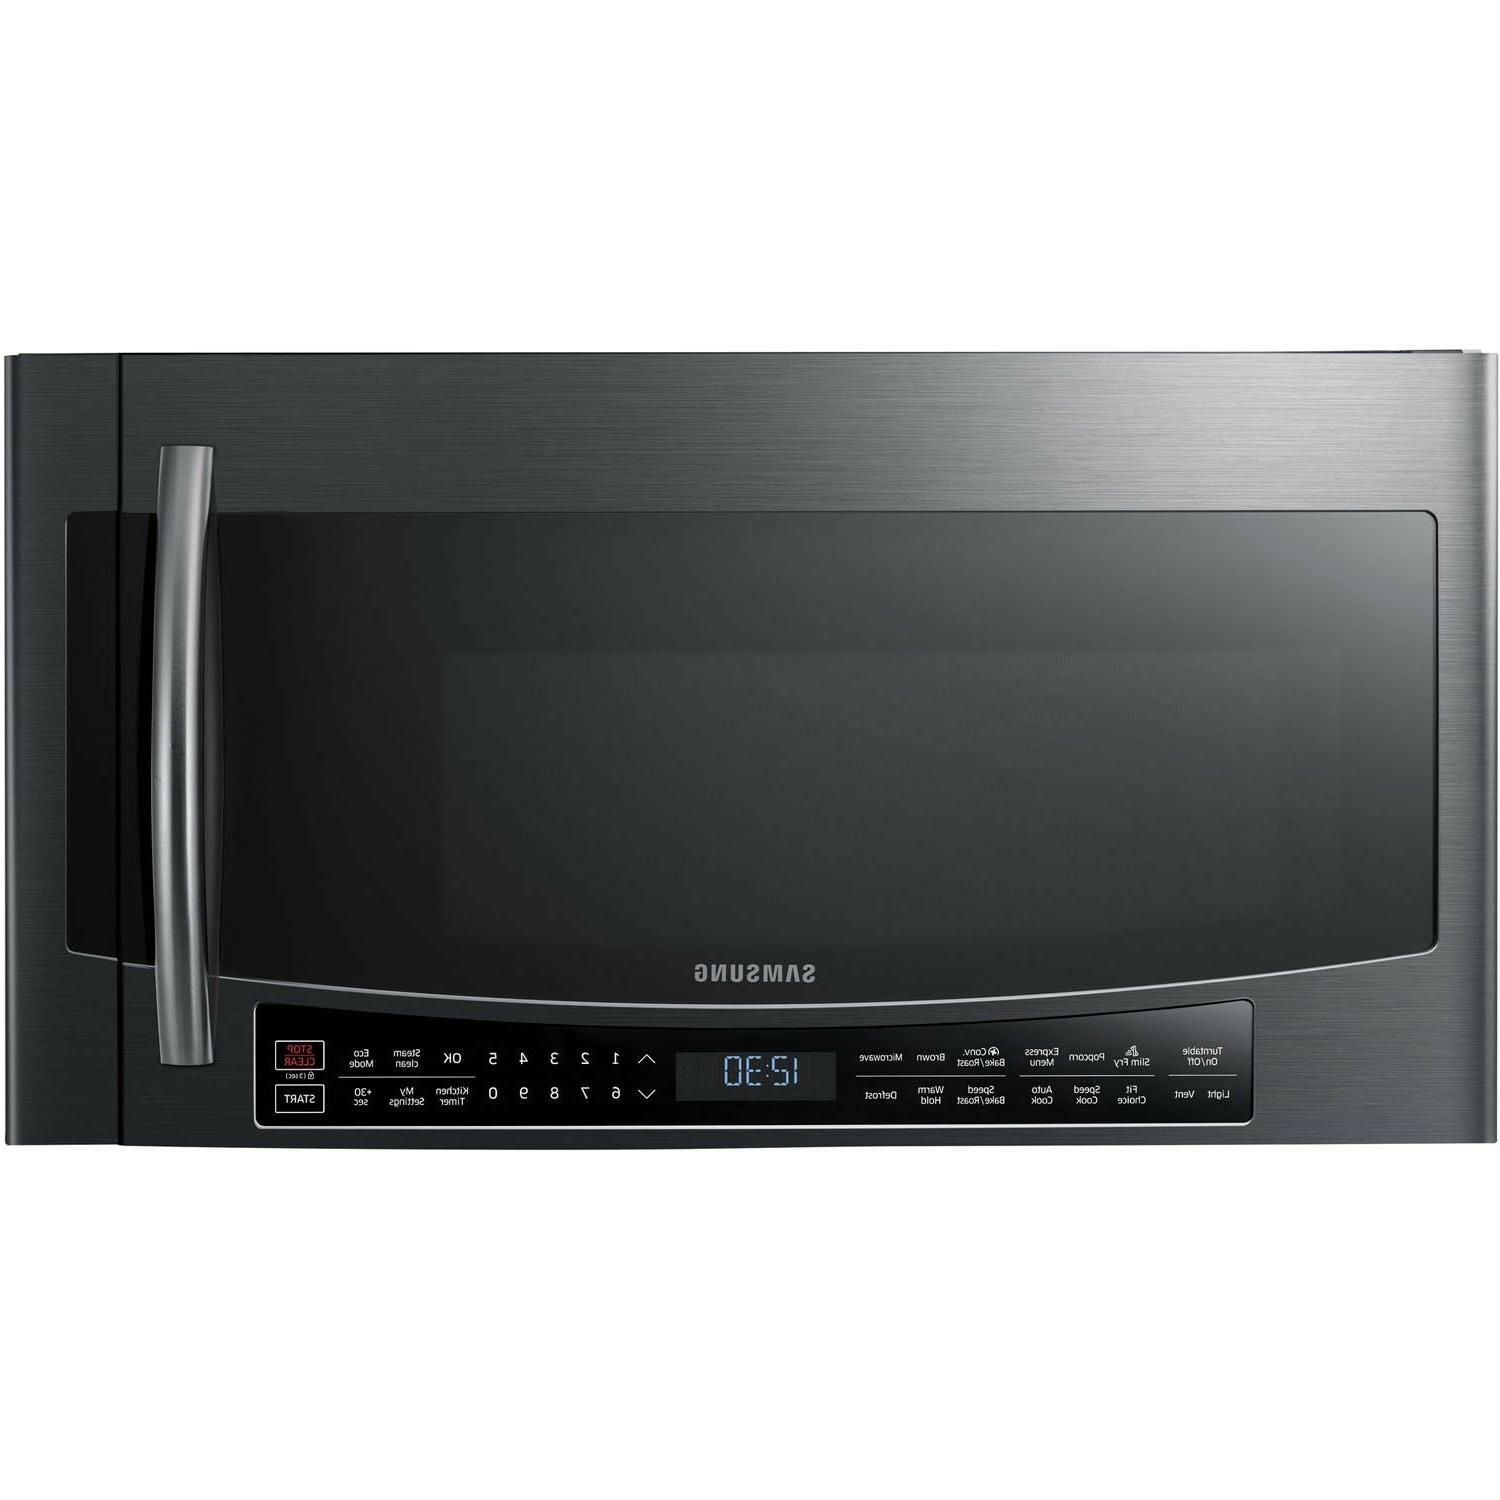 Samsung Black Stainless Steel Over-The-Range Convection Micr